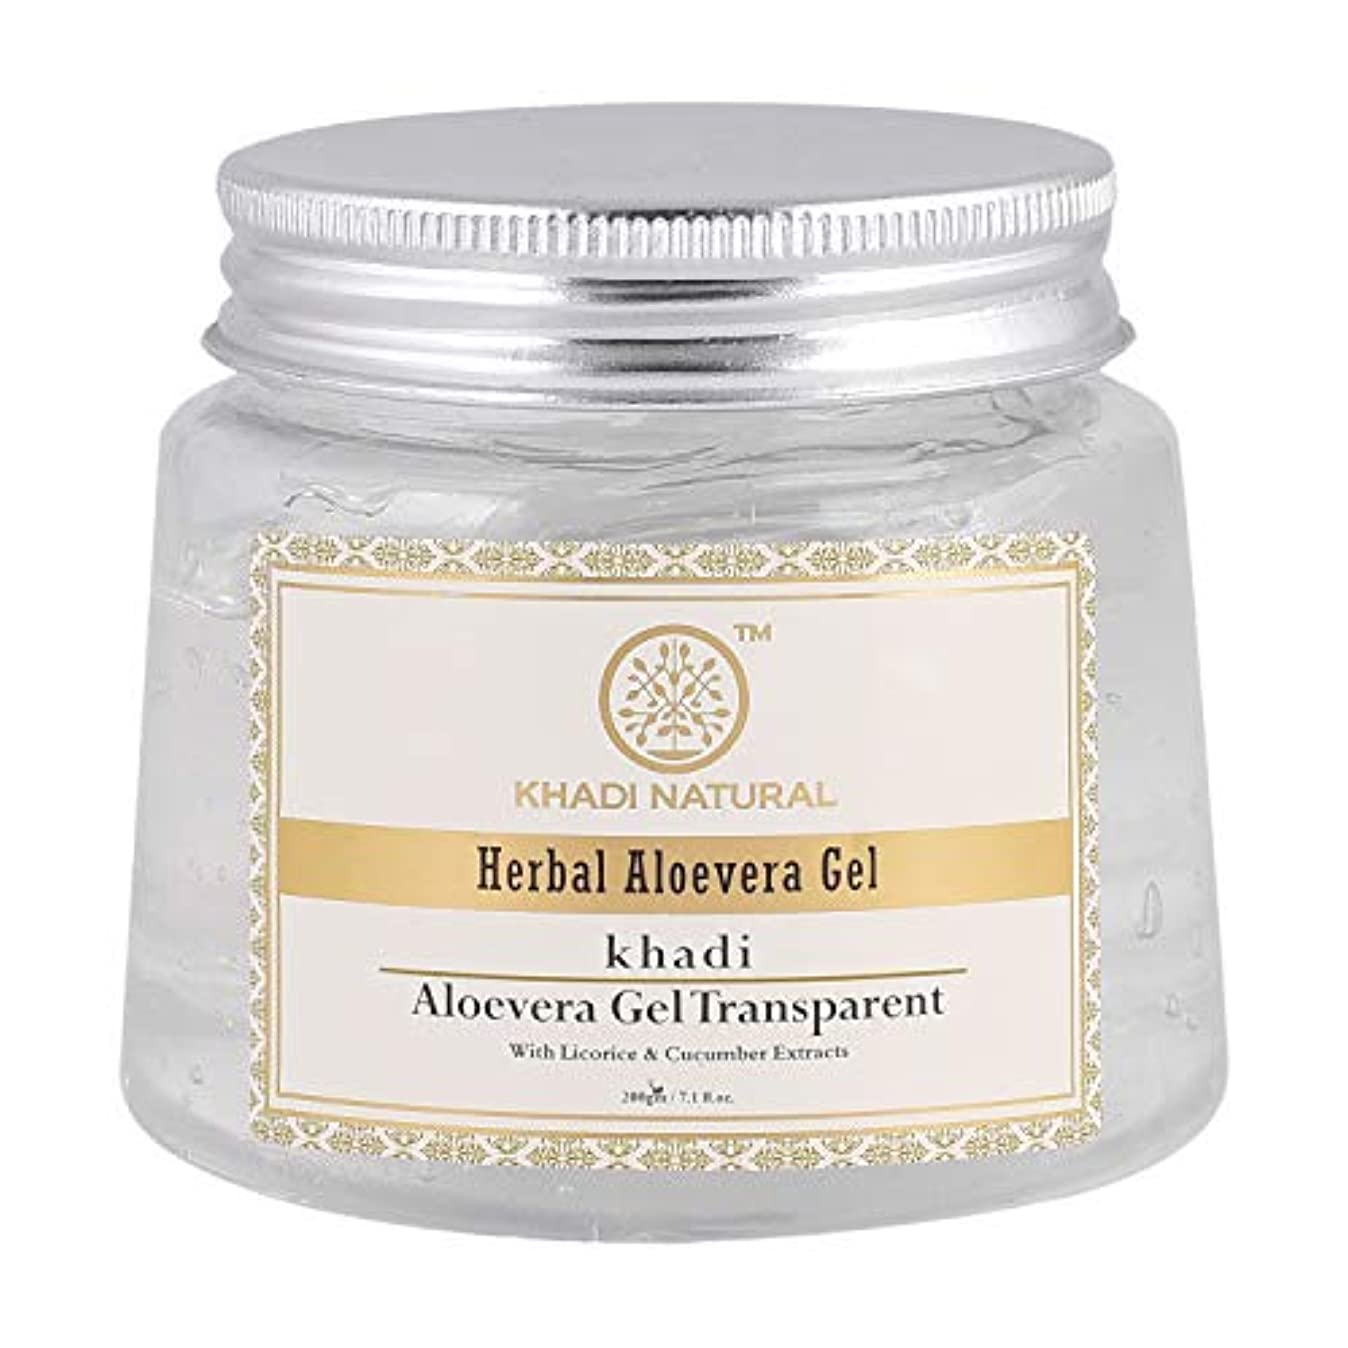 Khadi Natural Herbal Aloevera Gel With Liqorice & Cucumber Extracts 200g